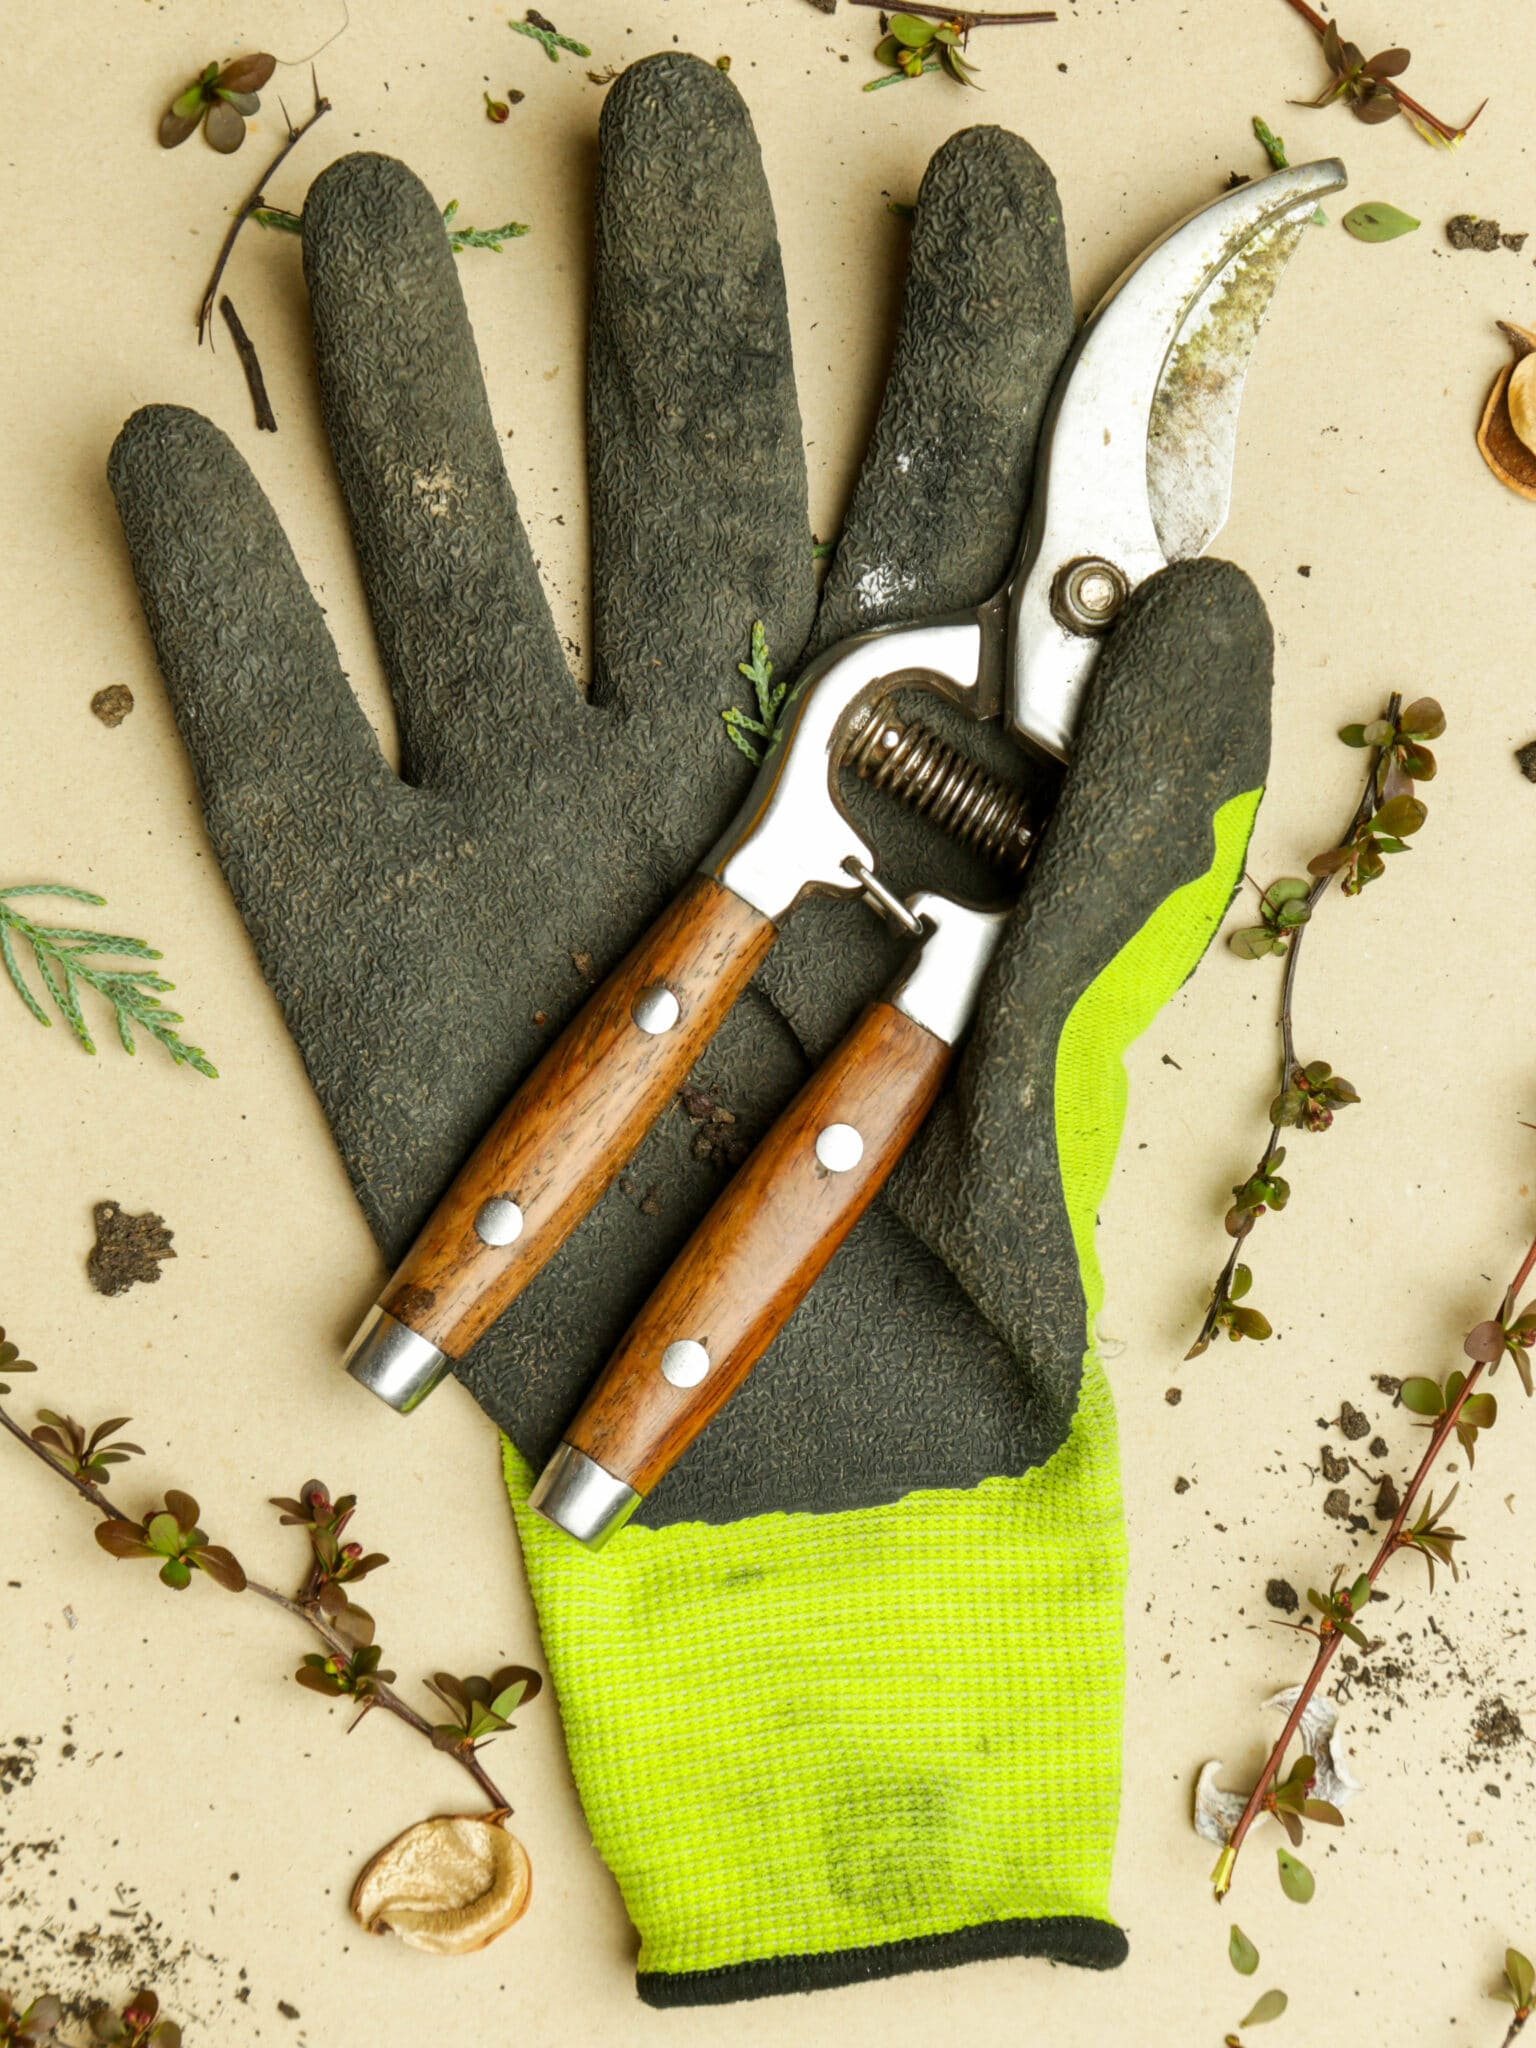 Latex-dipped green gardening gloves on a table with garden shears.